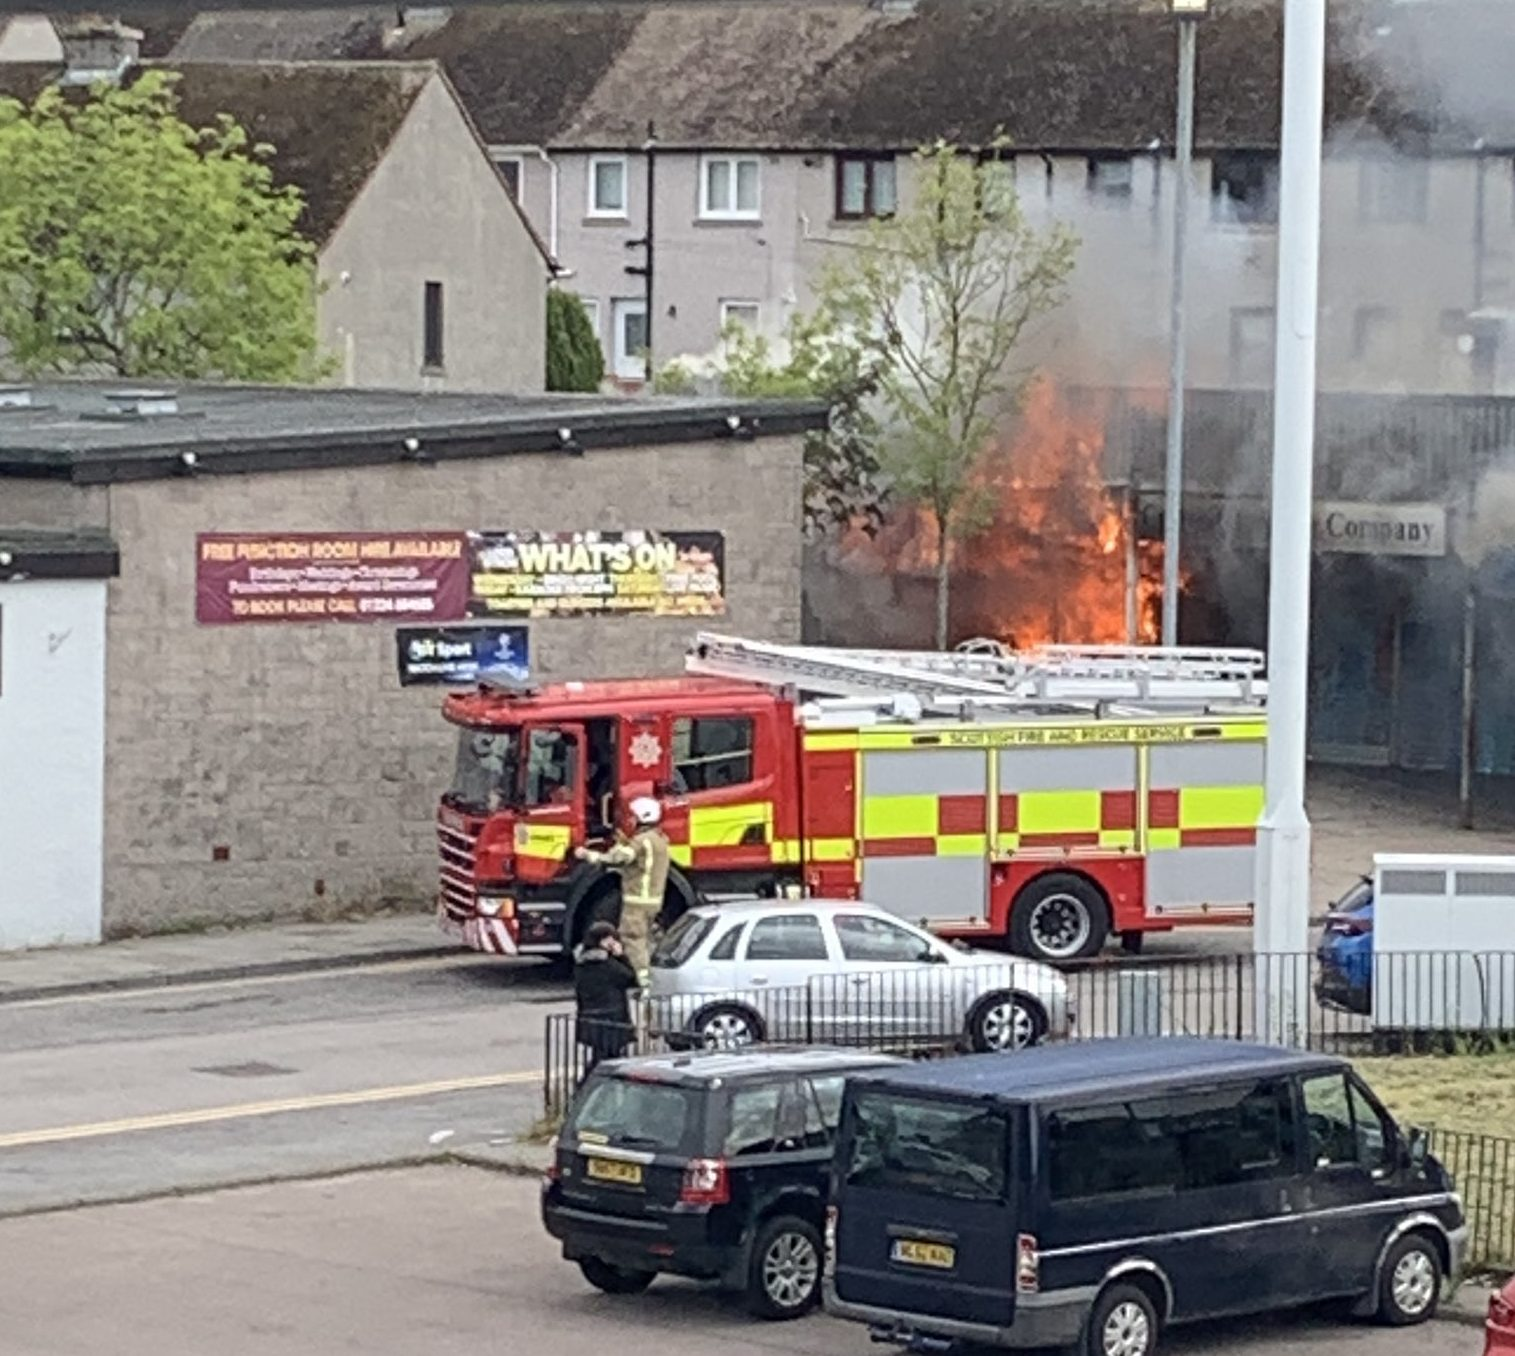 Firefighters at the scene. Picture by Stephen Webster